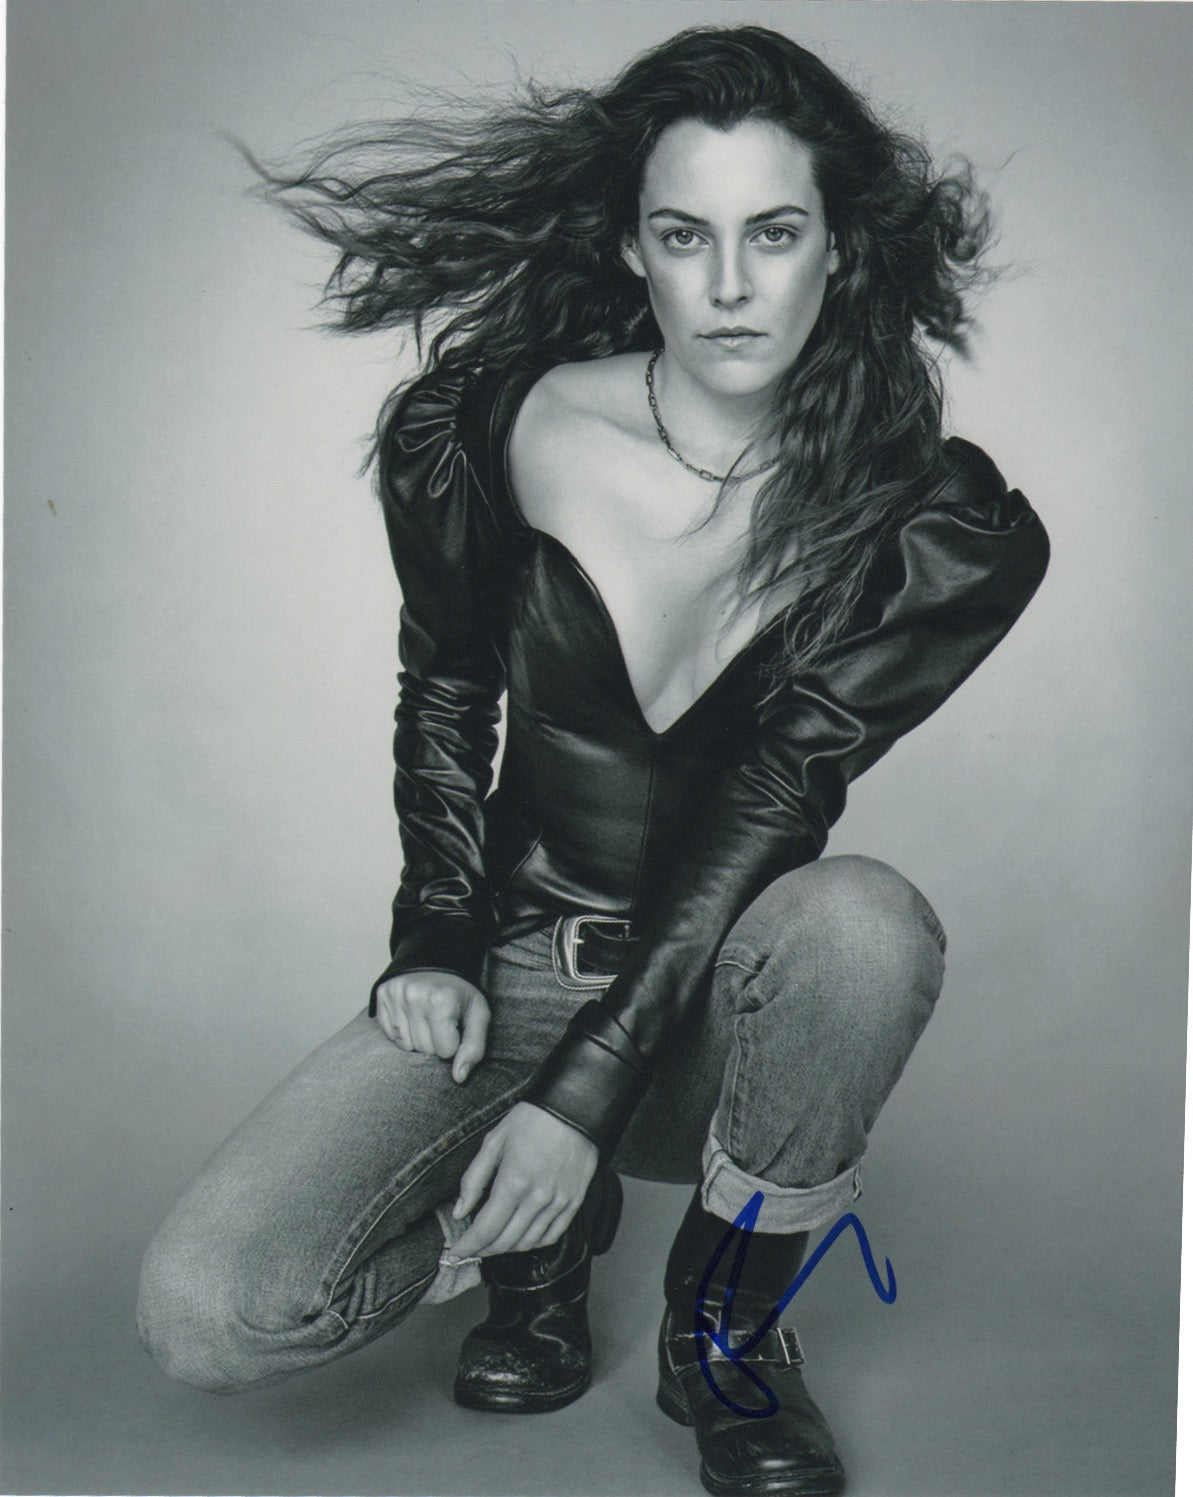 Riley Keough Sexy Signed Autograph 8x10 Photo - Outlaw Hobbies Authentic Autographs